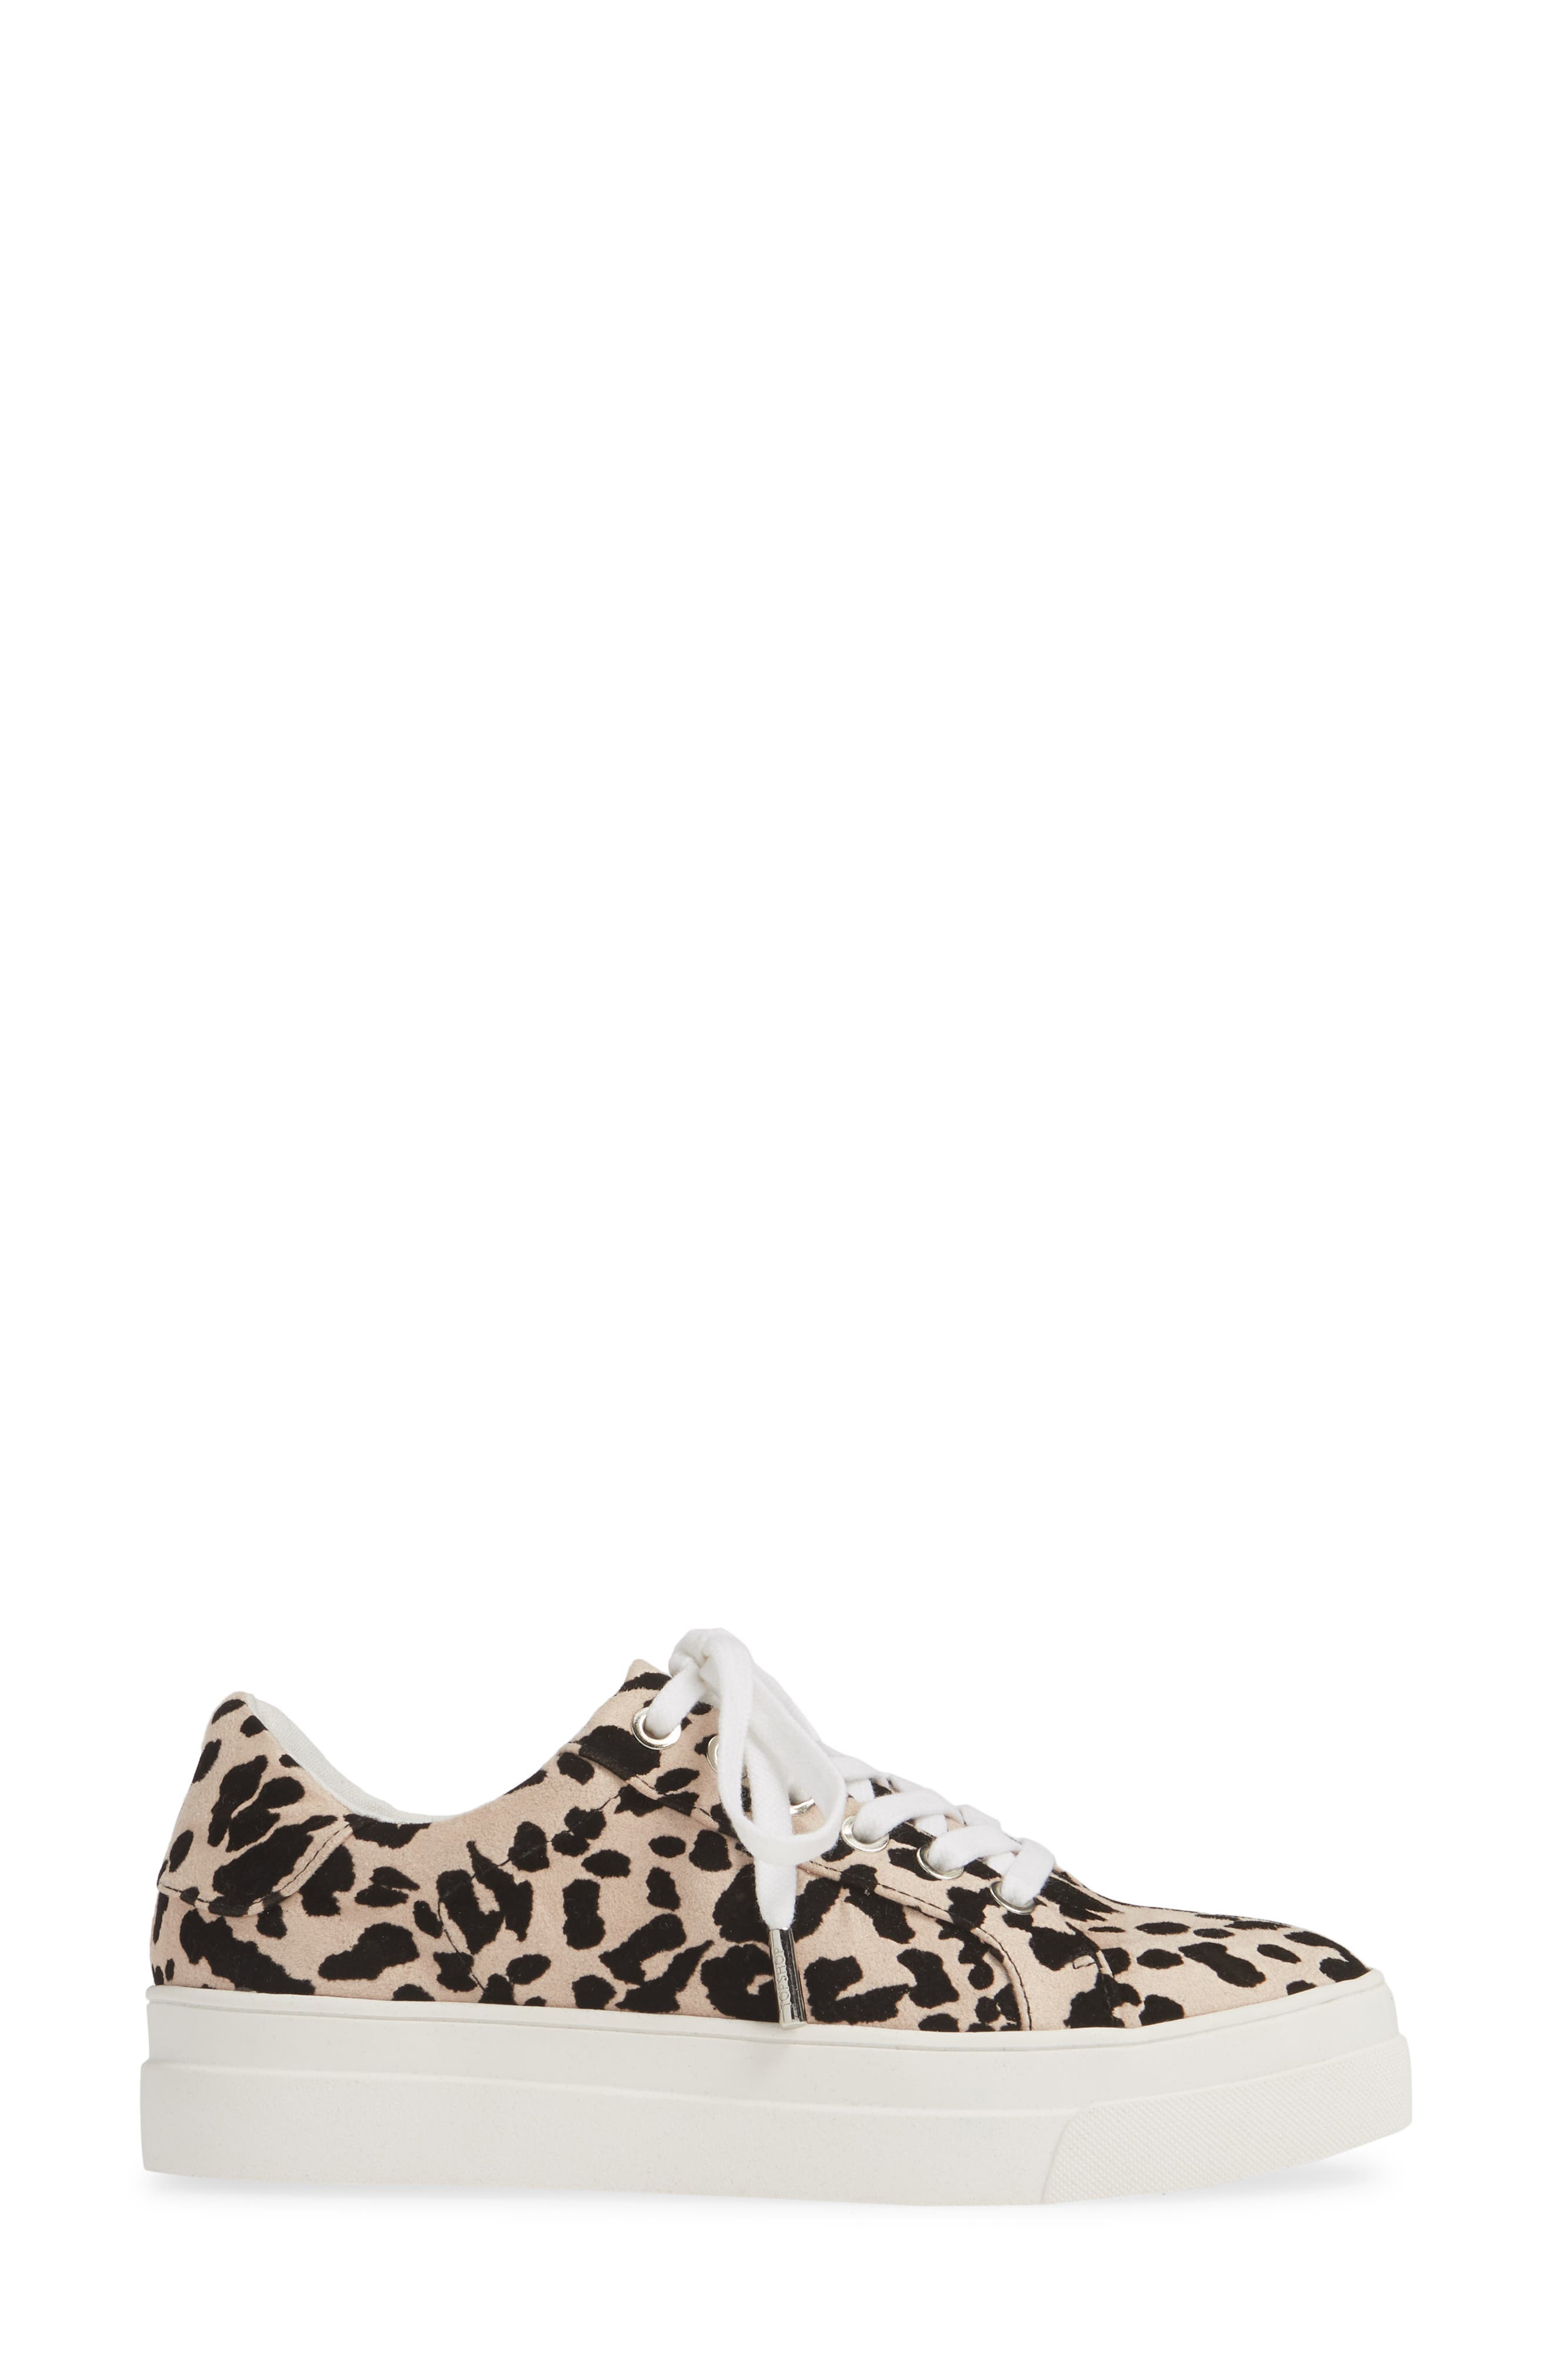 TOPSHOP, Candy Platform Sneaker, Alternate thumbnail 3, color, NUDE MULTI